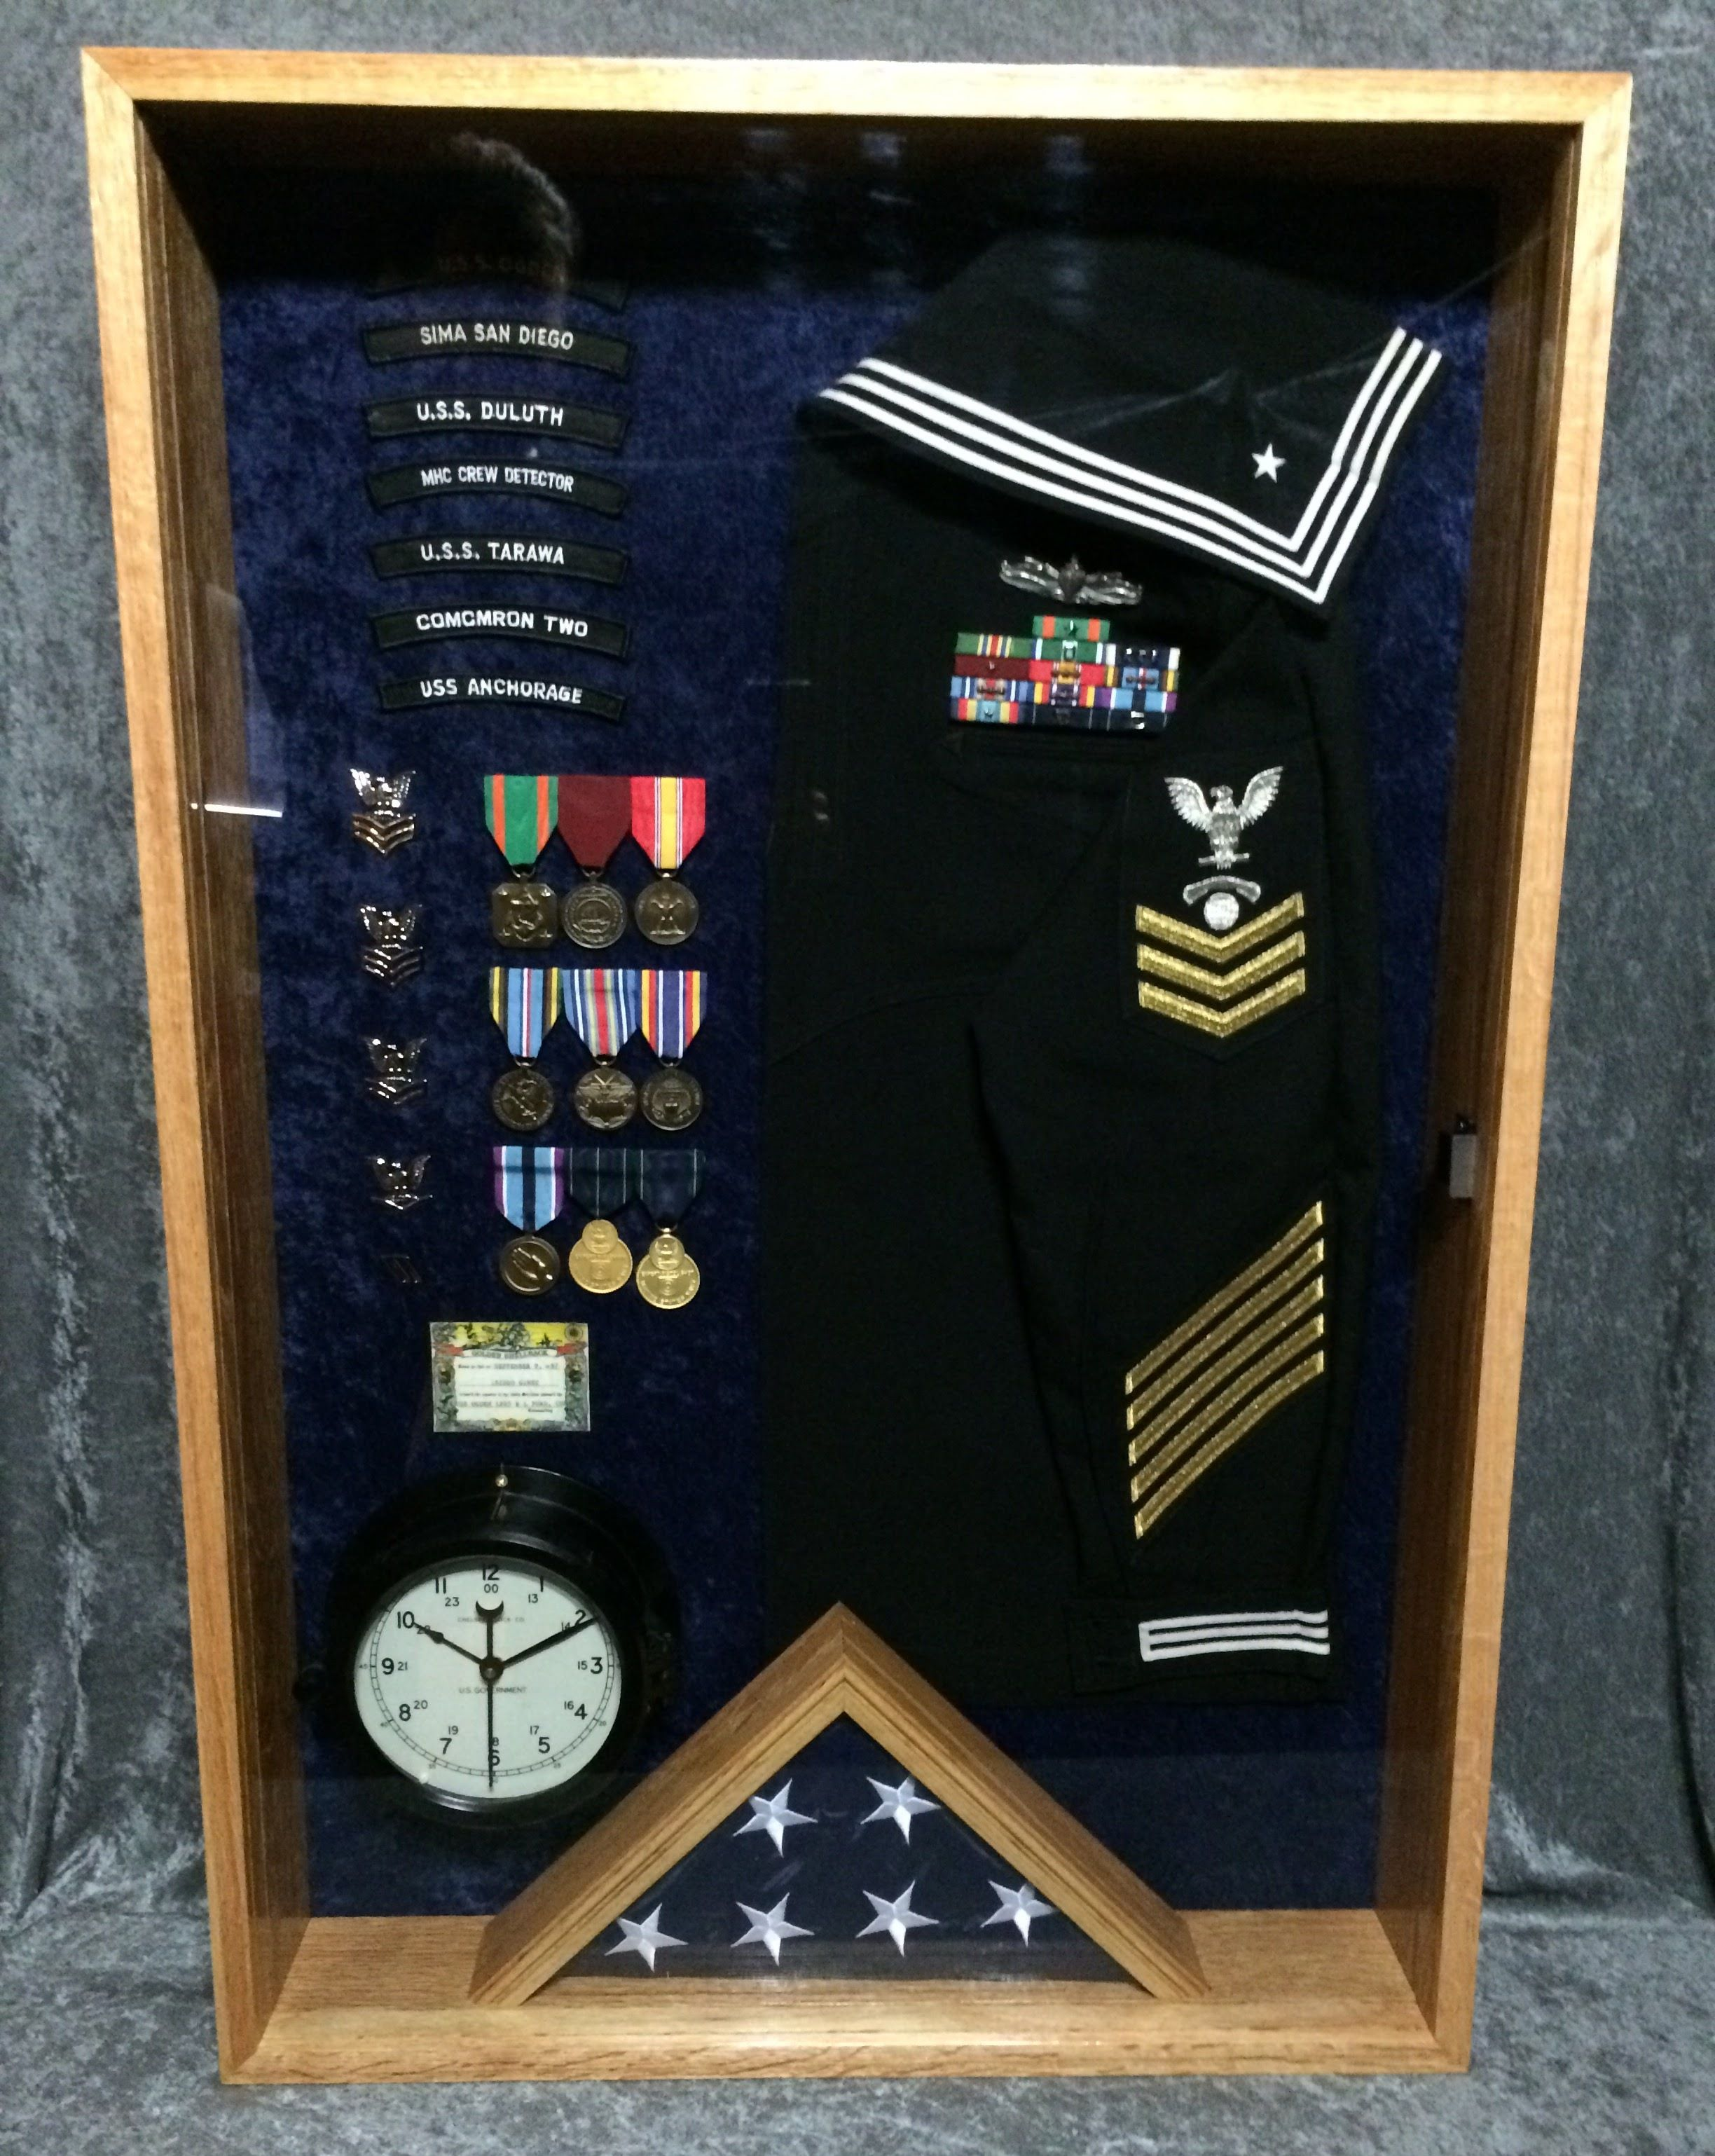 us navy shadow box questions on design or price contact us navy shadow box questions on design or price contact lunawood1775 gmail com